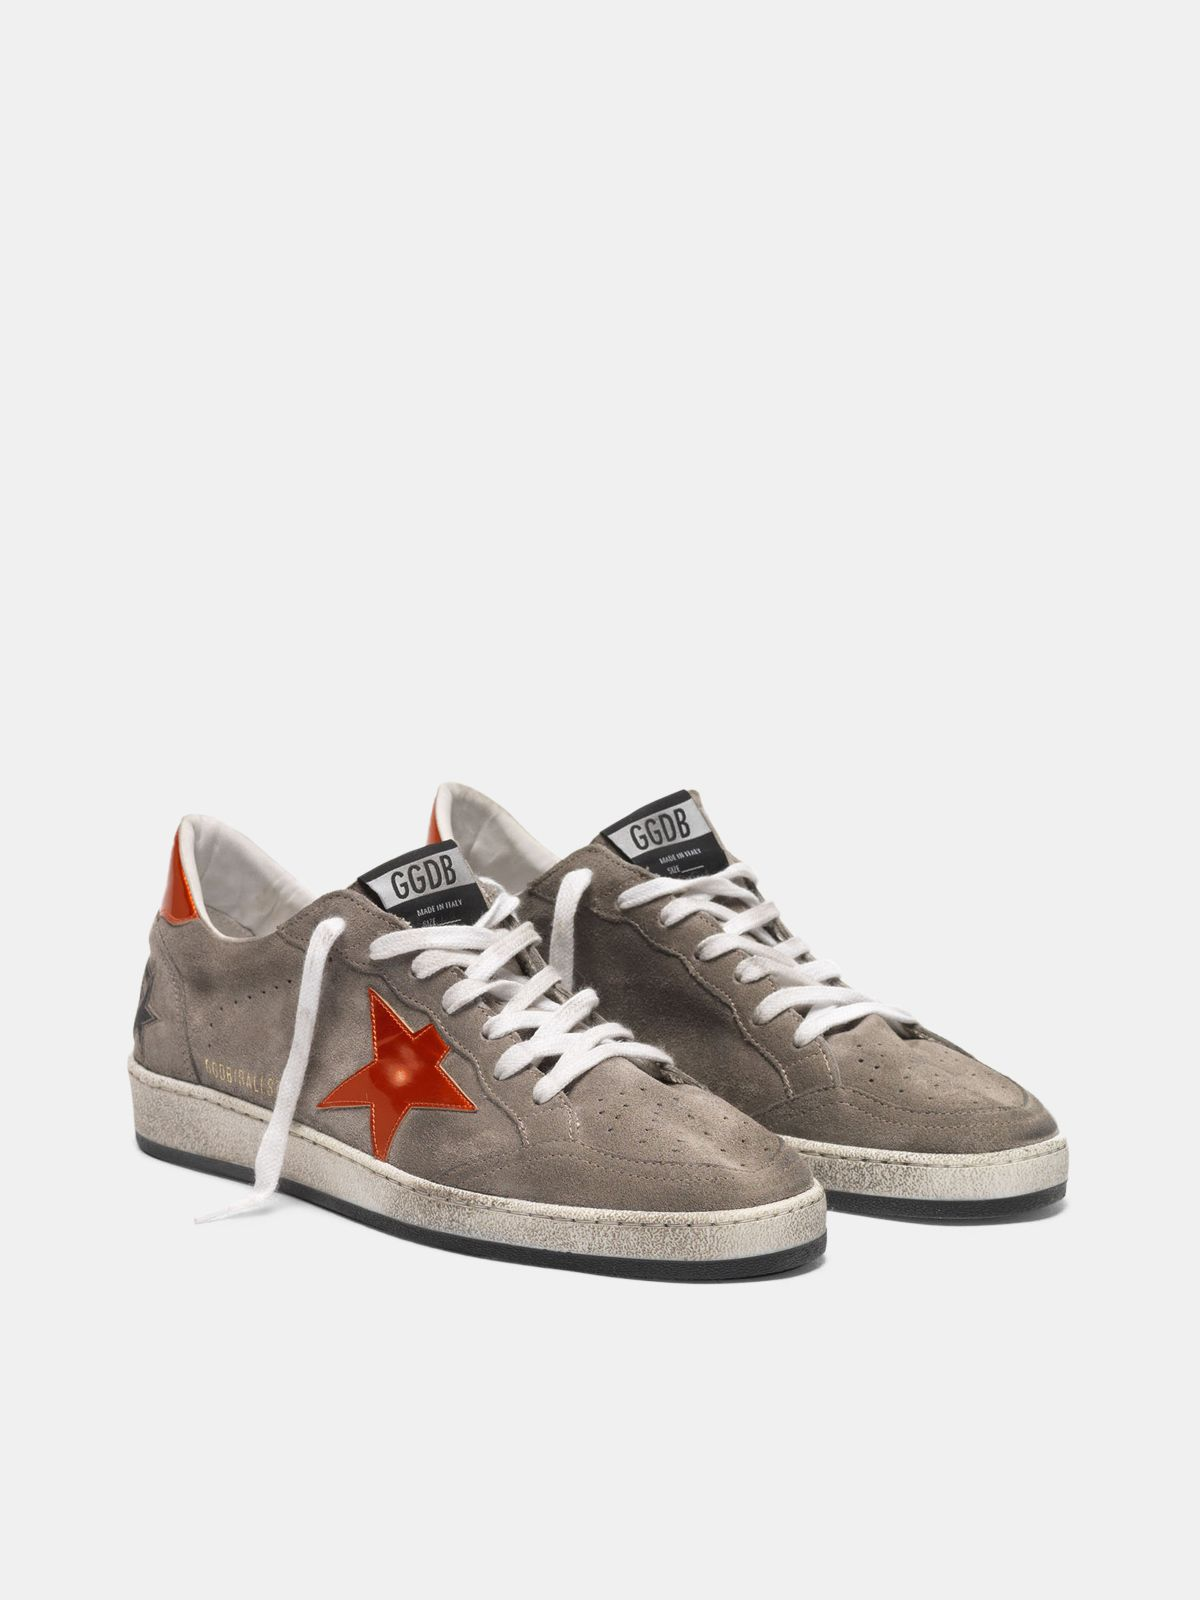 Golden Goose - Ball Star sneakers in grey suede with orange star in